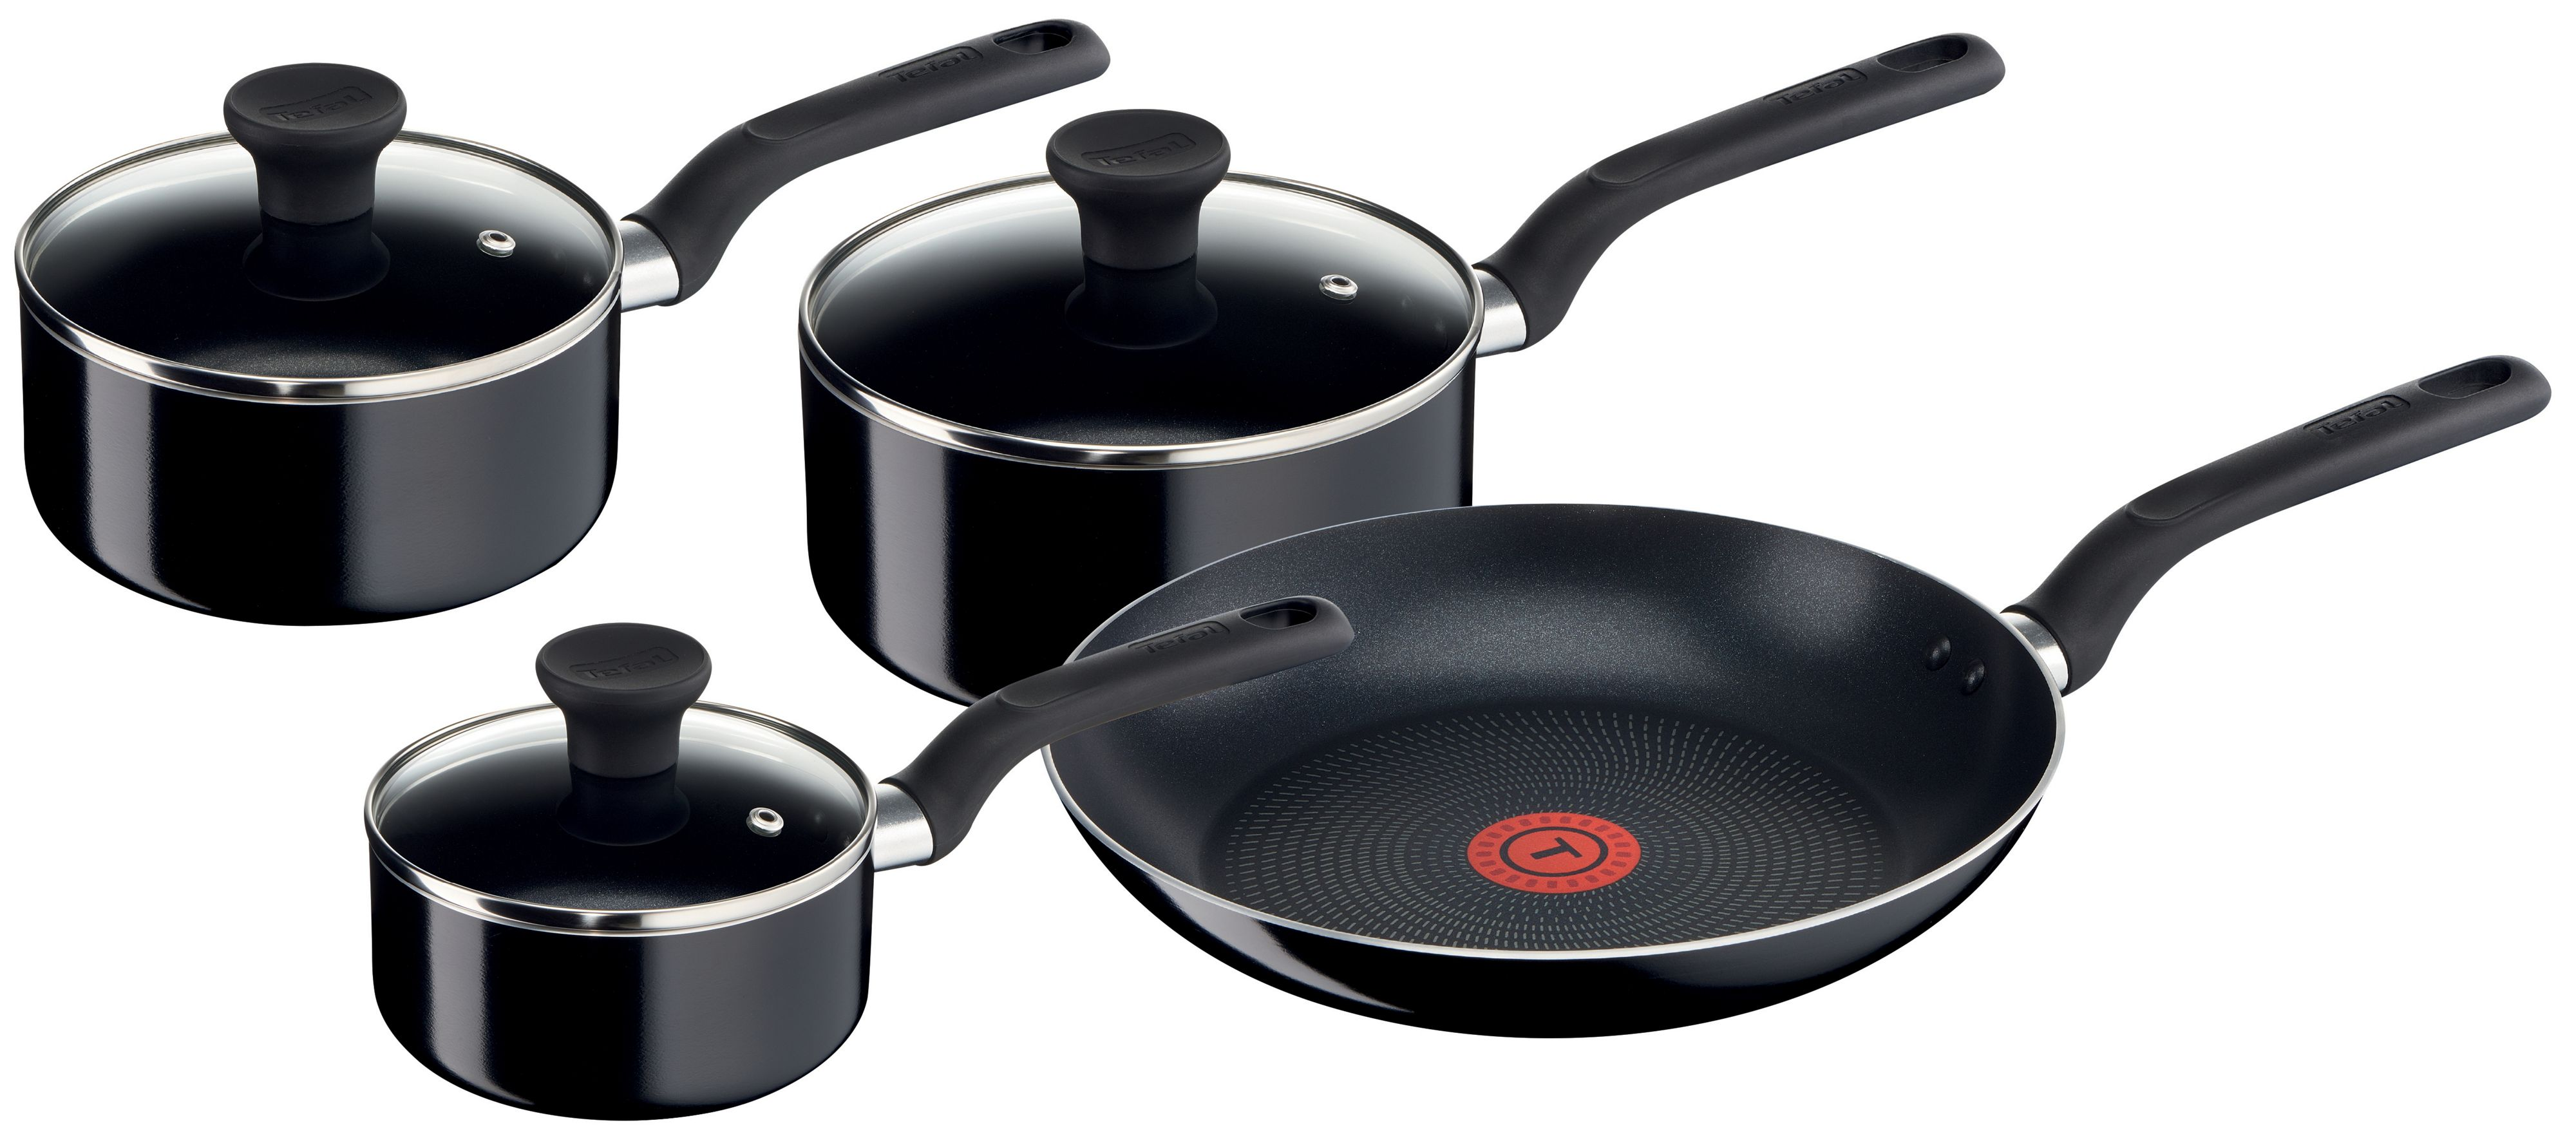 Tefal Pan Set Buy Cheap Tefal Set Compare Cookware And Utensils Prices